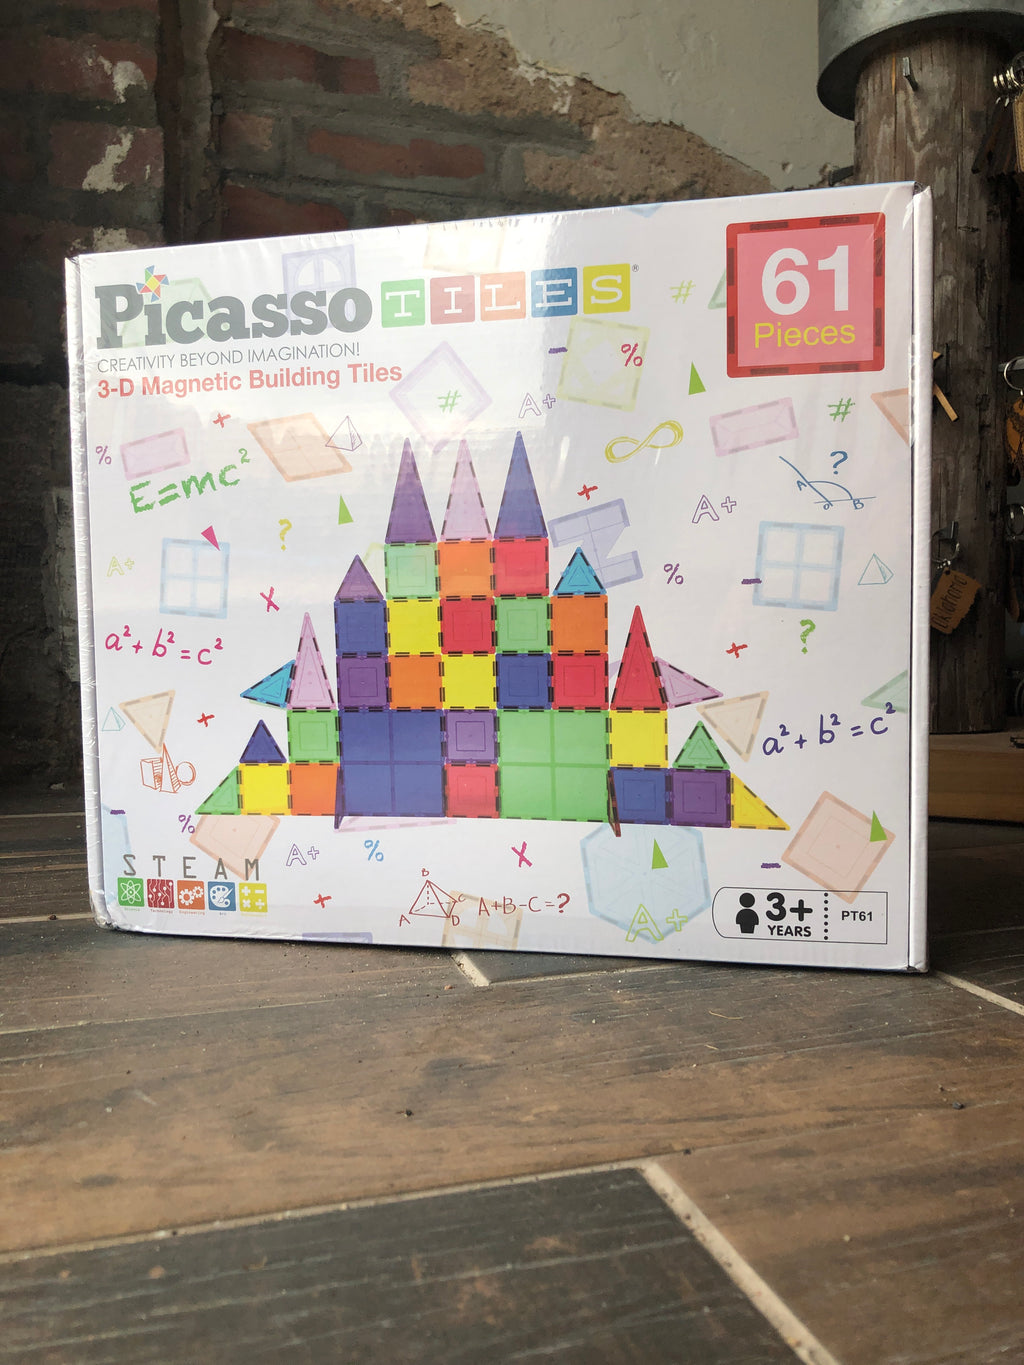 Picasso Tiles 61 Piece Large Magnetic Tiles